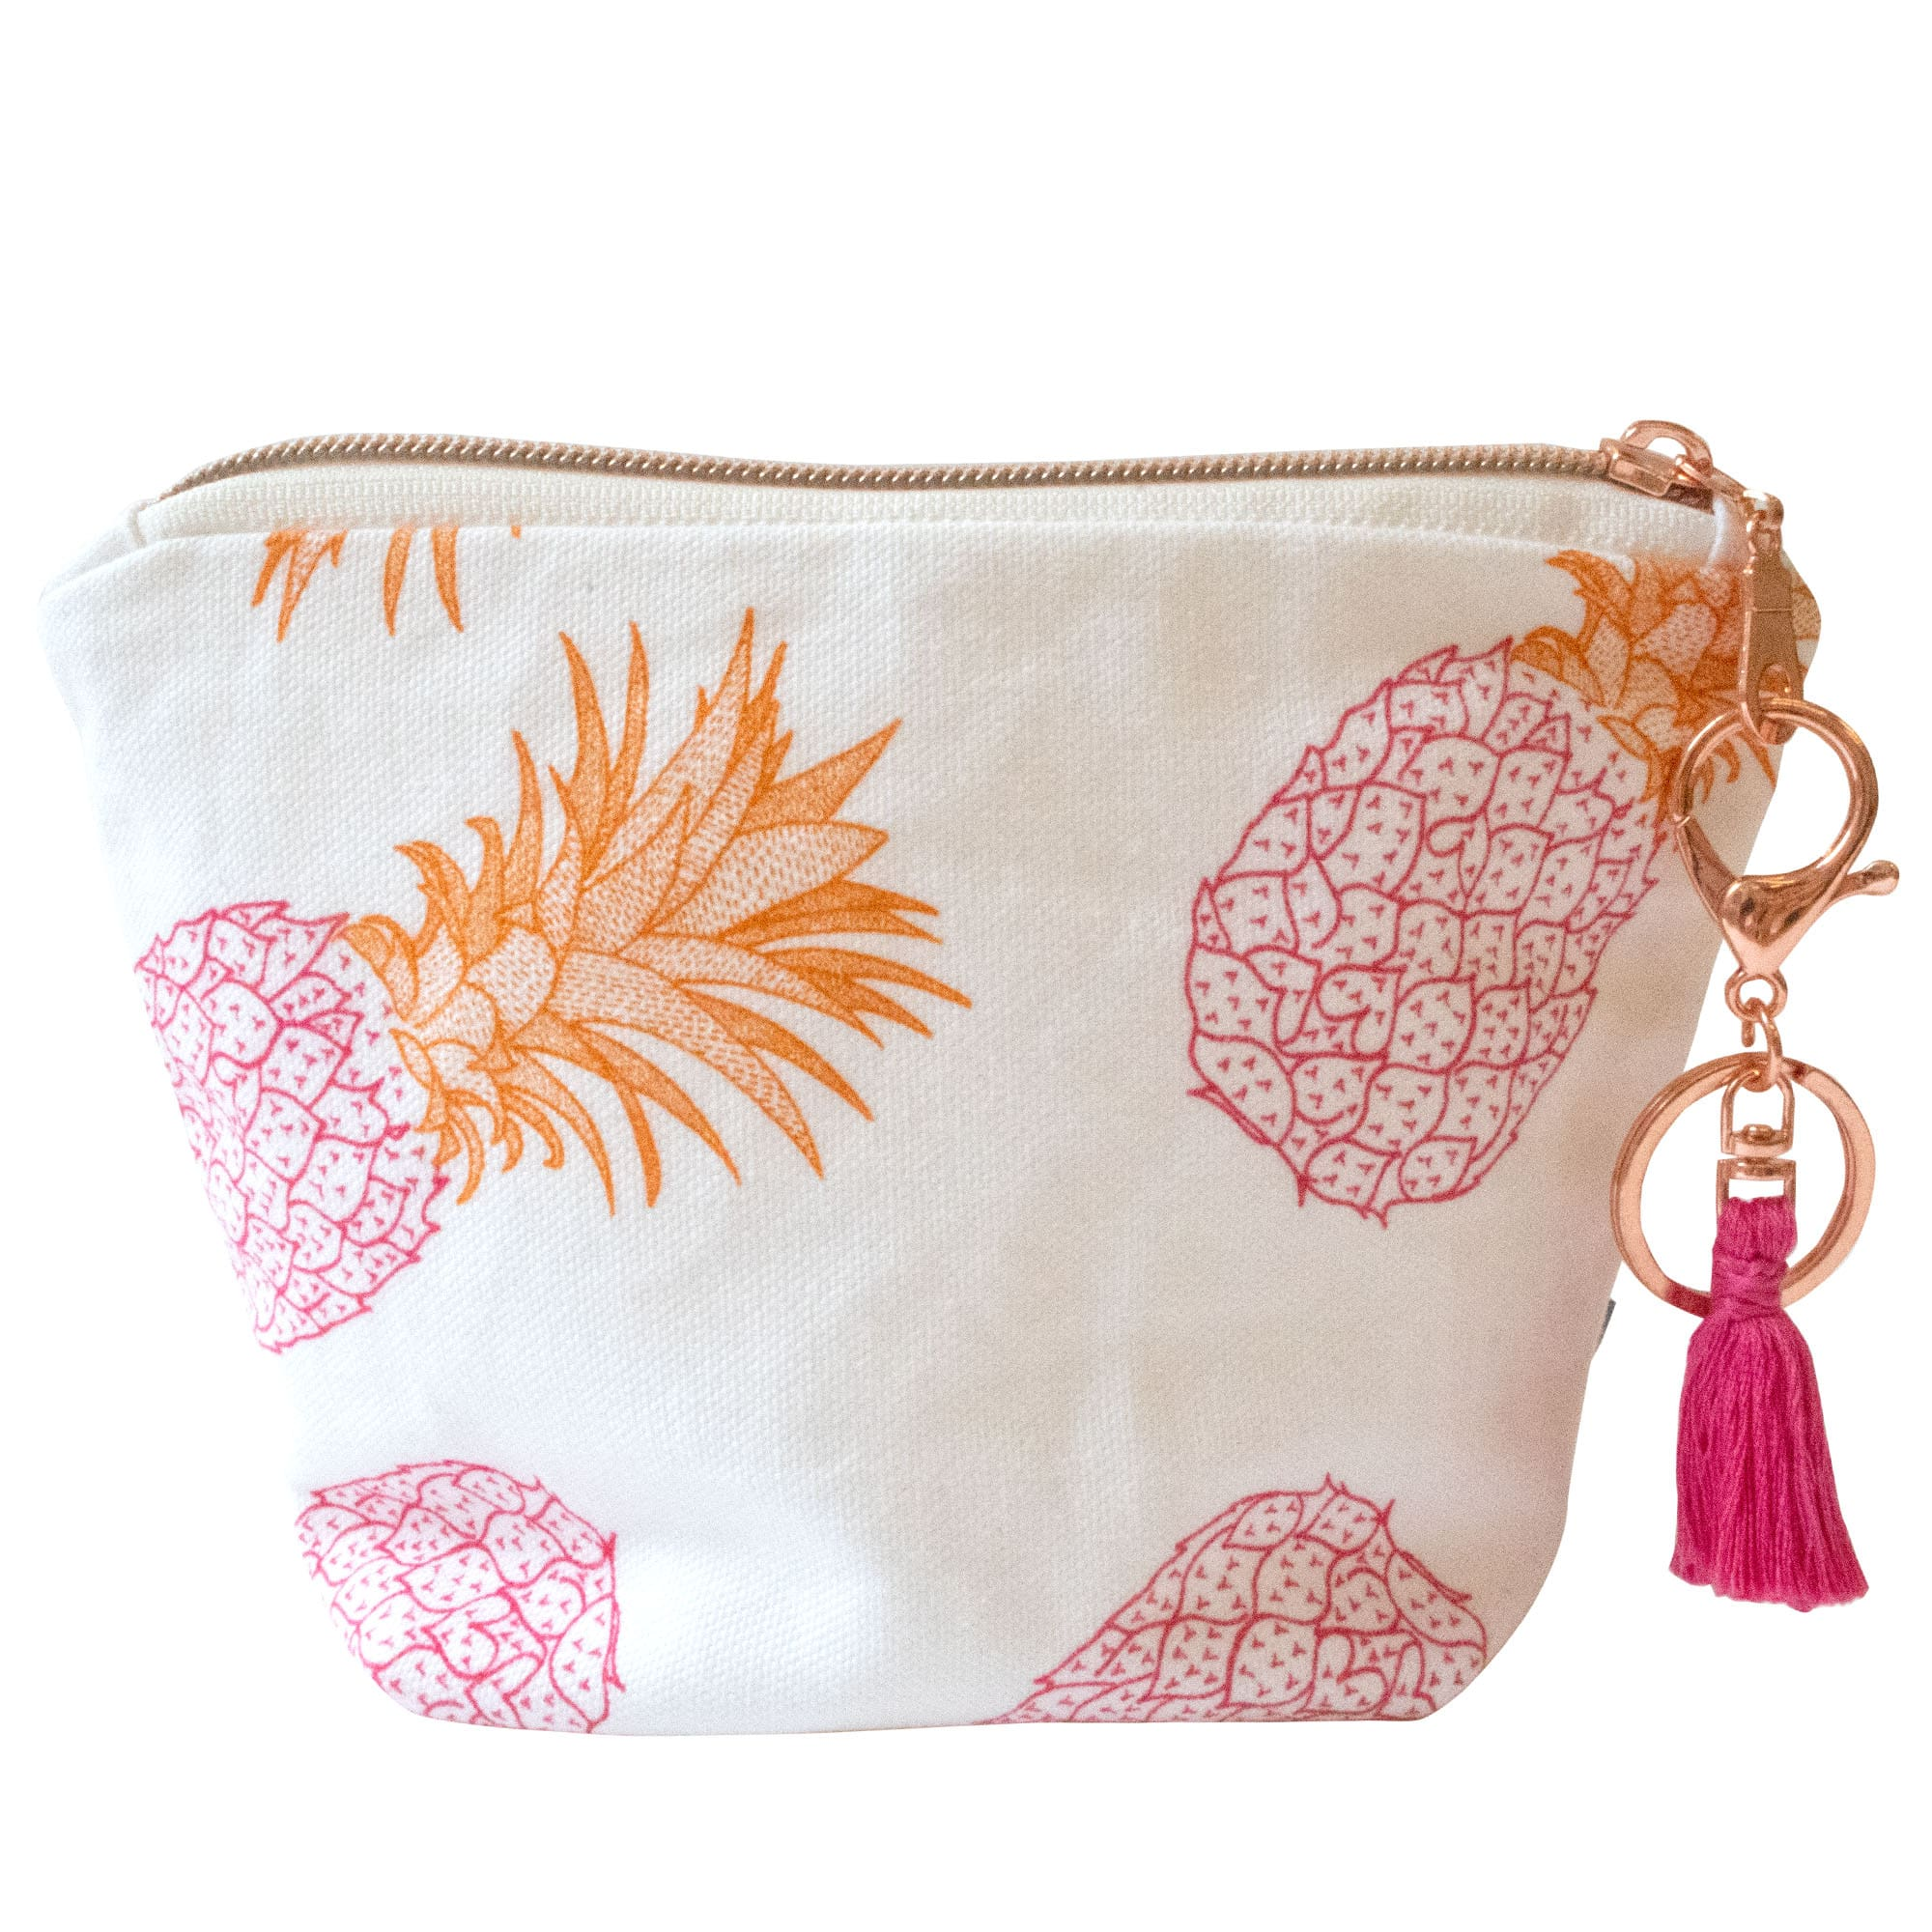 Pineapple Tassel Pouch Pink and Orange